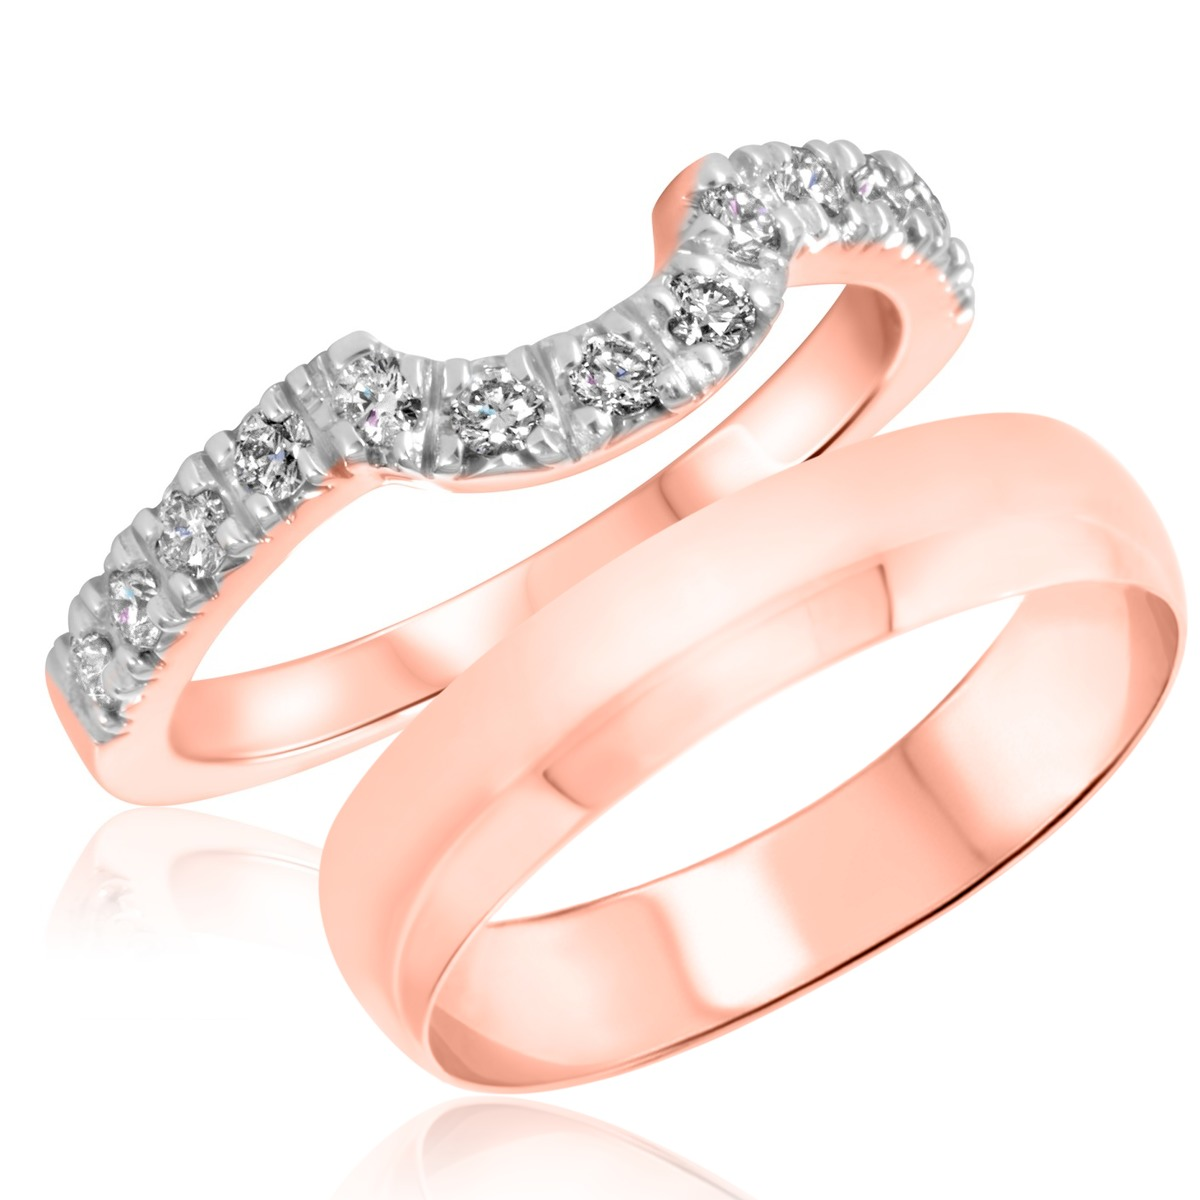 3/8 Carat T.W. Round Cut Diamond His and Hers Wedding Band Set 14K Rose Gold